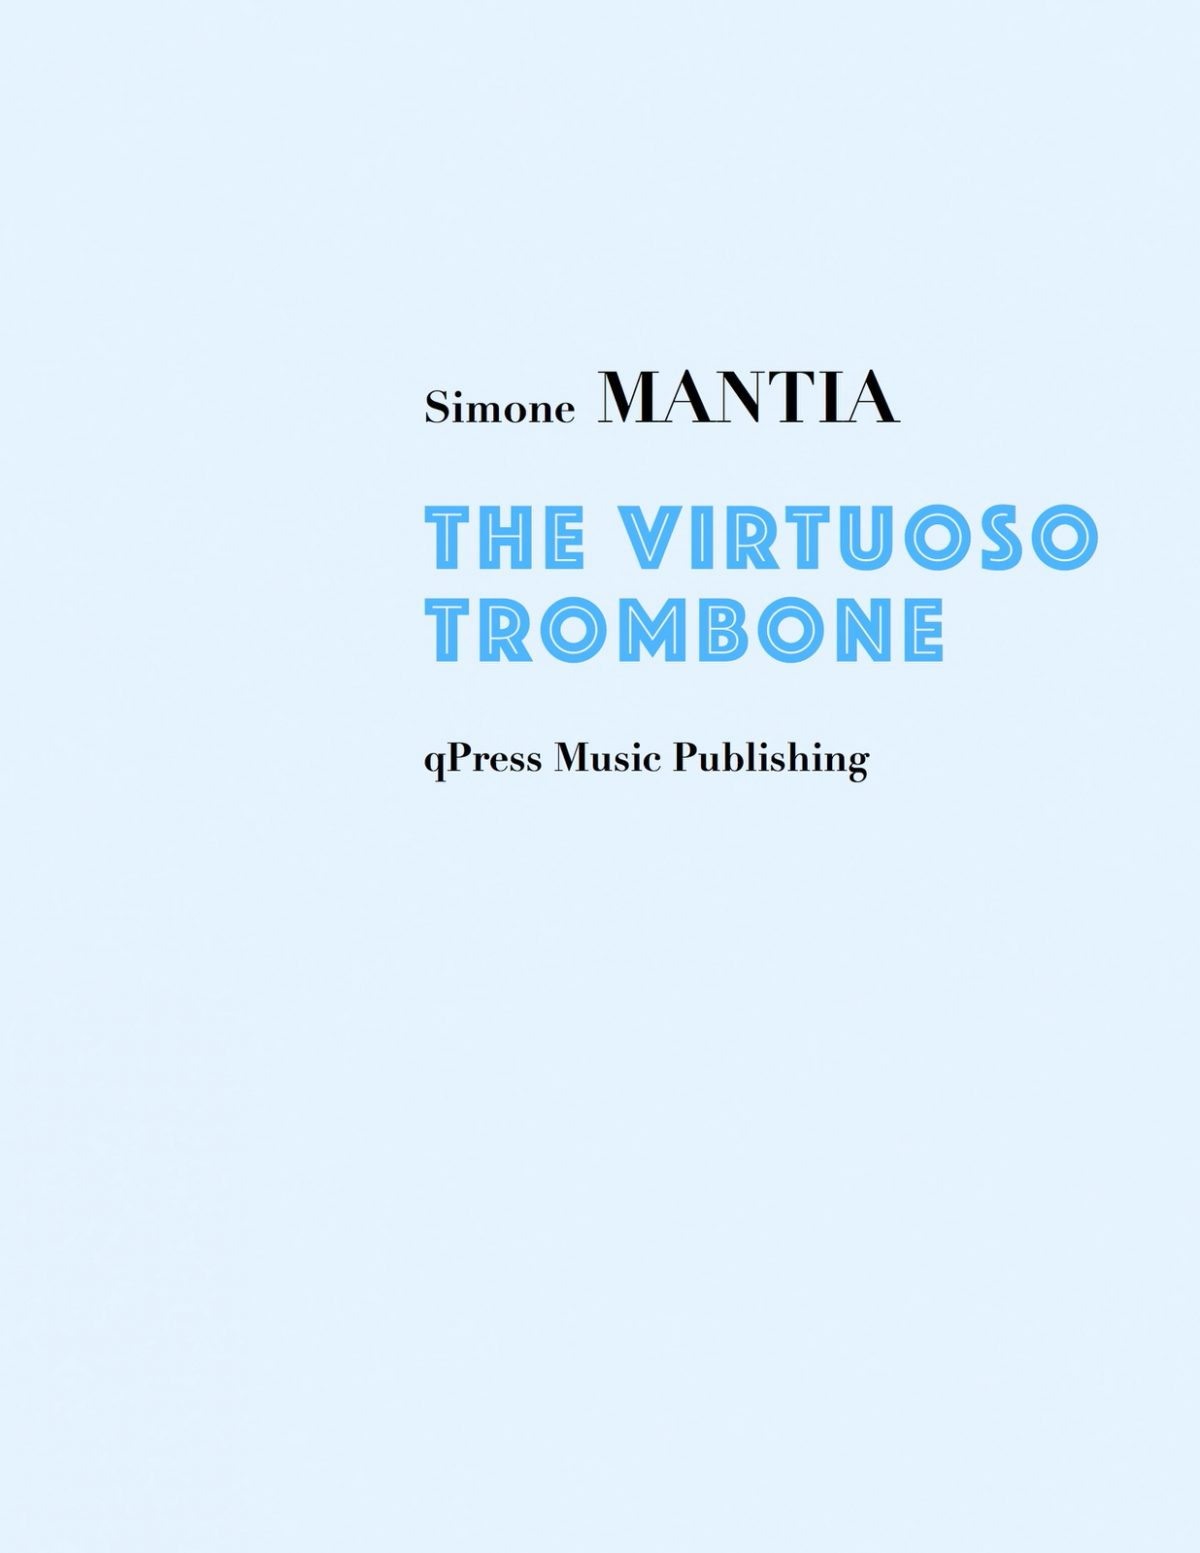 Mantia, Simone The Virtuoso Trombone 1